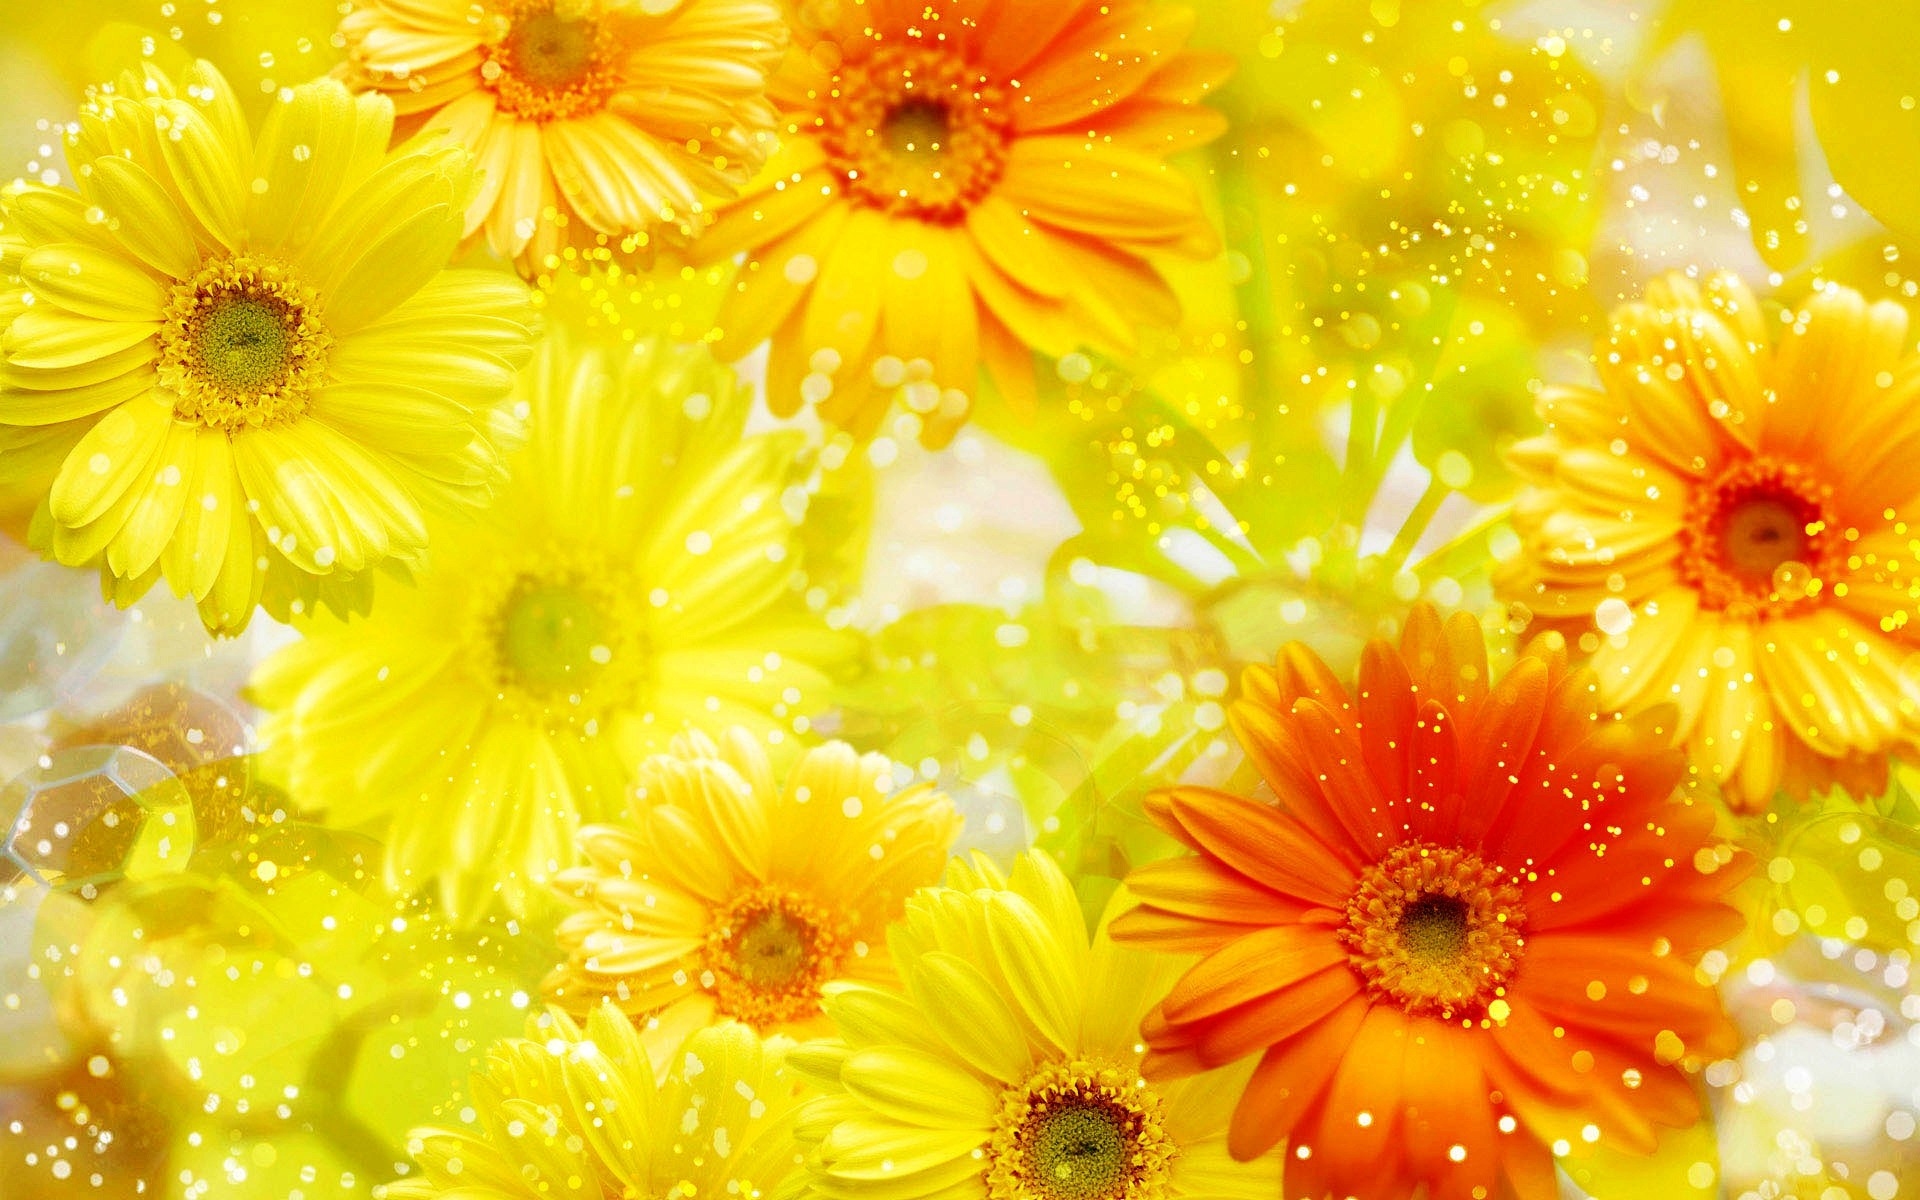 Hd wallpaper yellow flowers - Wallpaper Yellow Flowers Id 70881 Source This